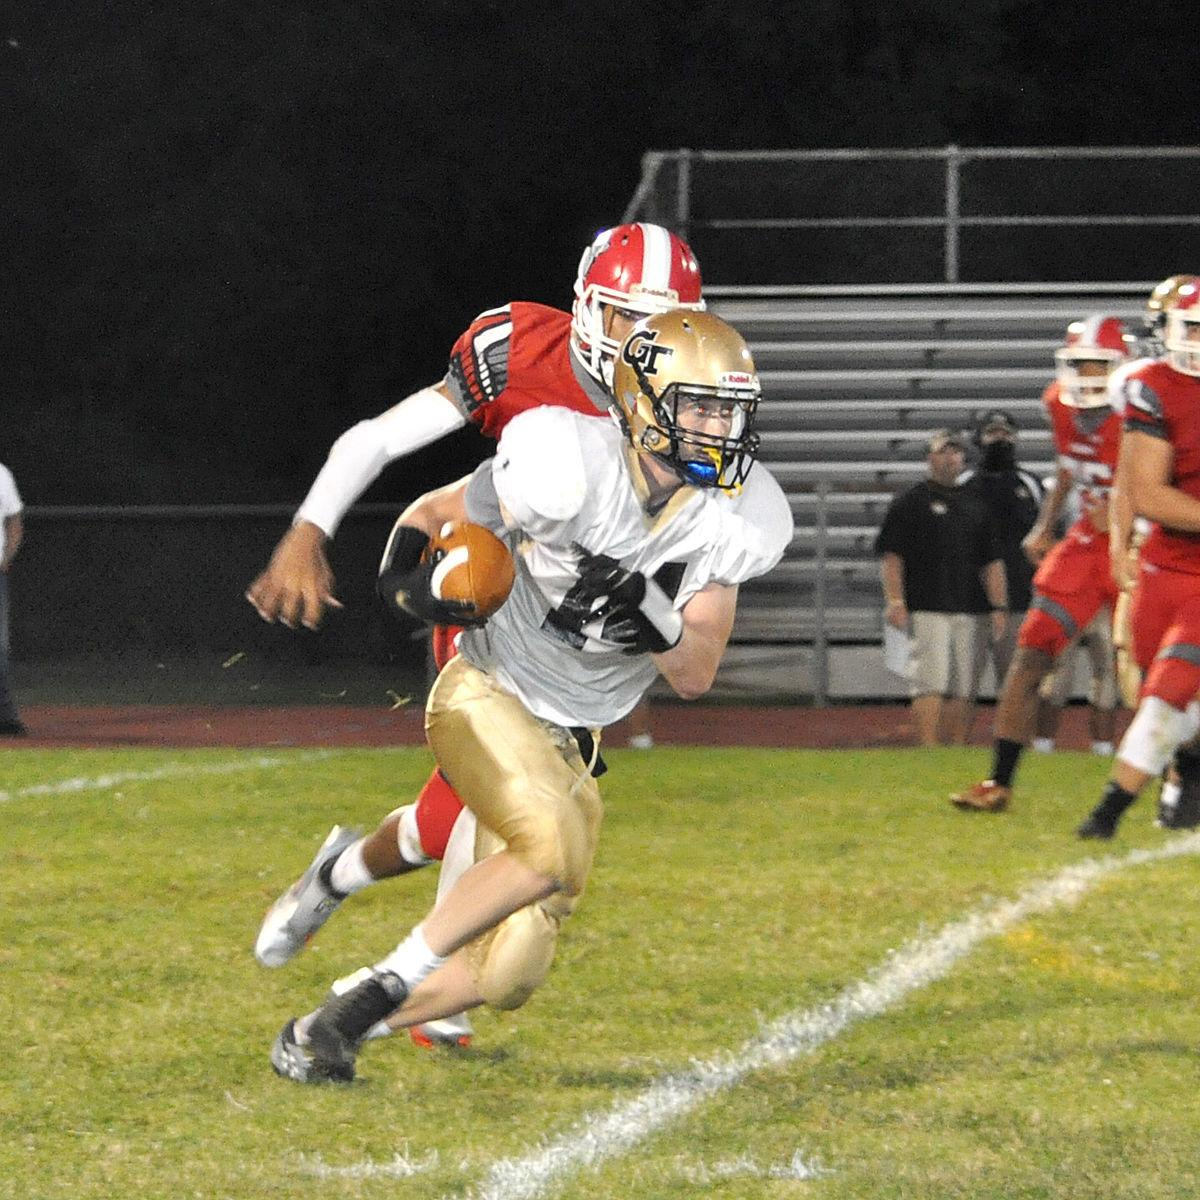 Butler catch vs Redbank Valley